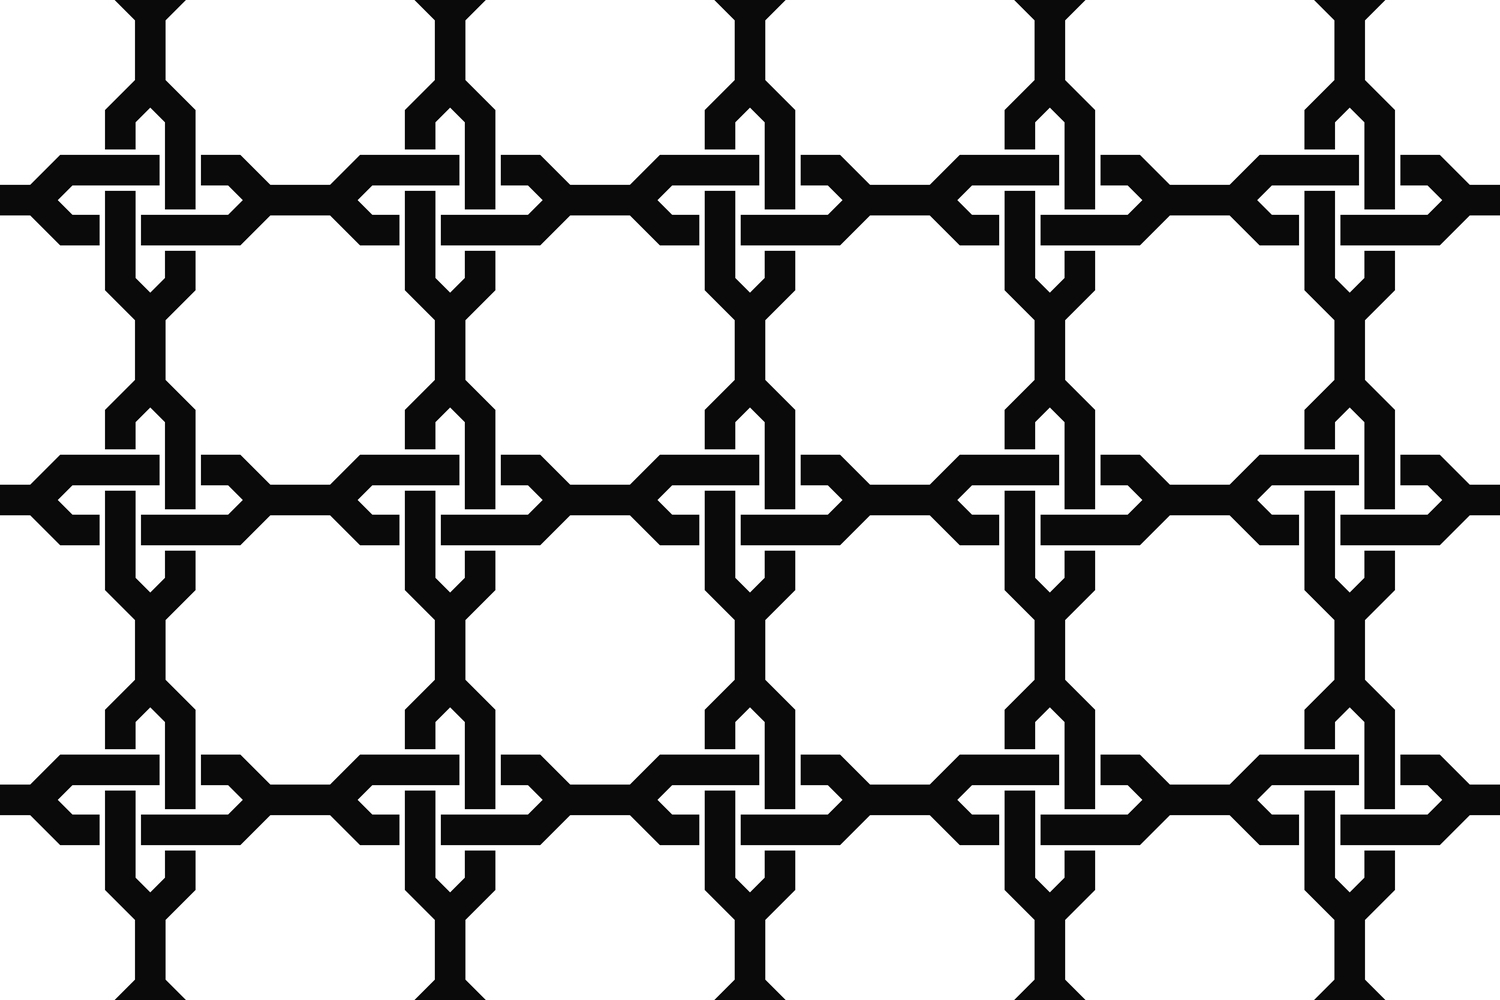 75 Monochrome Geometrical Patterns AI, EPS, JPG 5000x5000 example image 10